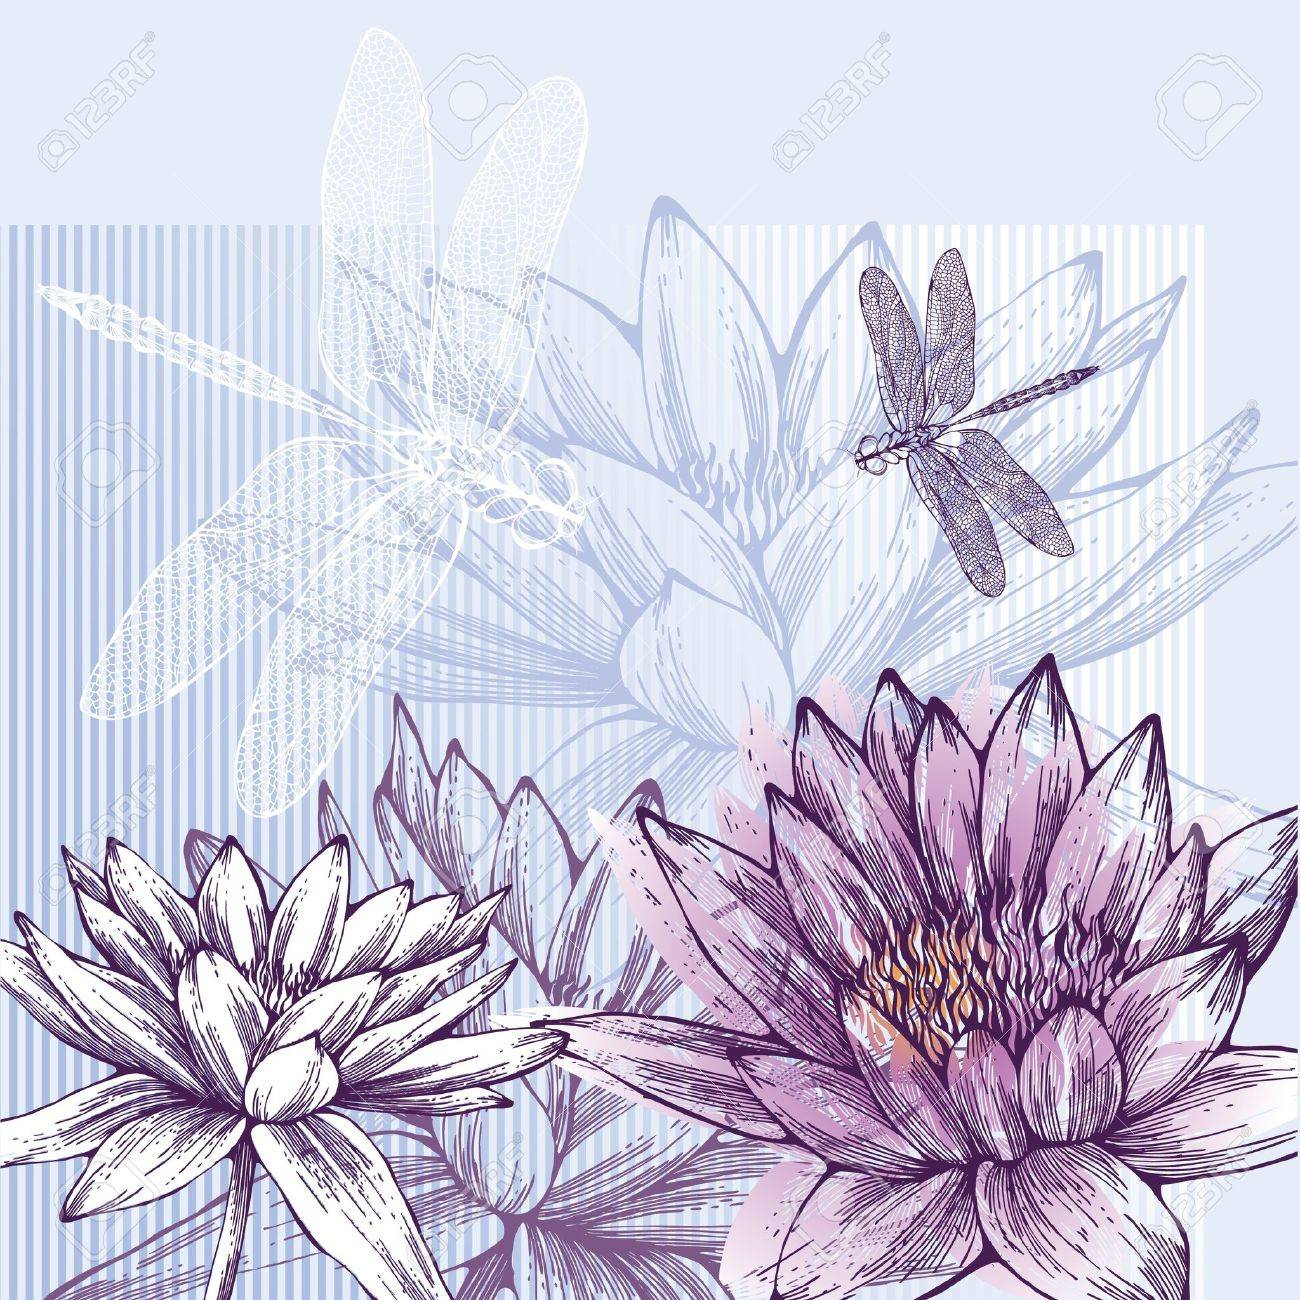 Floral background with blooming water lilies and dragonflies flying Stock Vector - 12816711